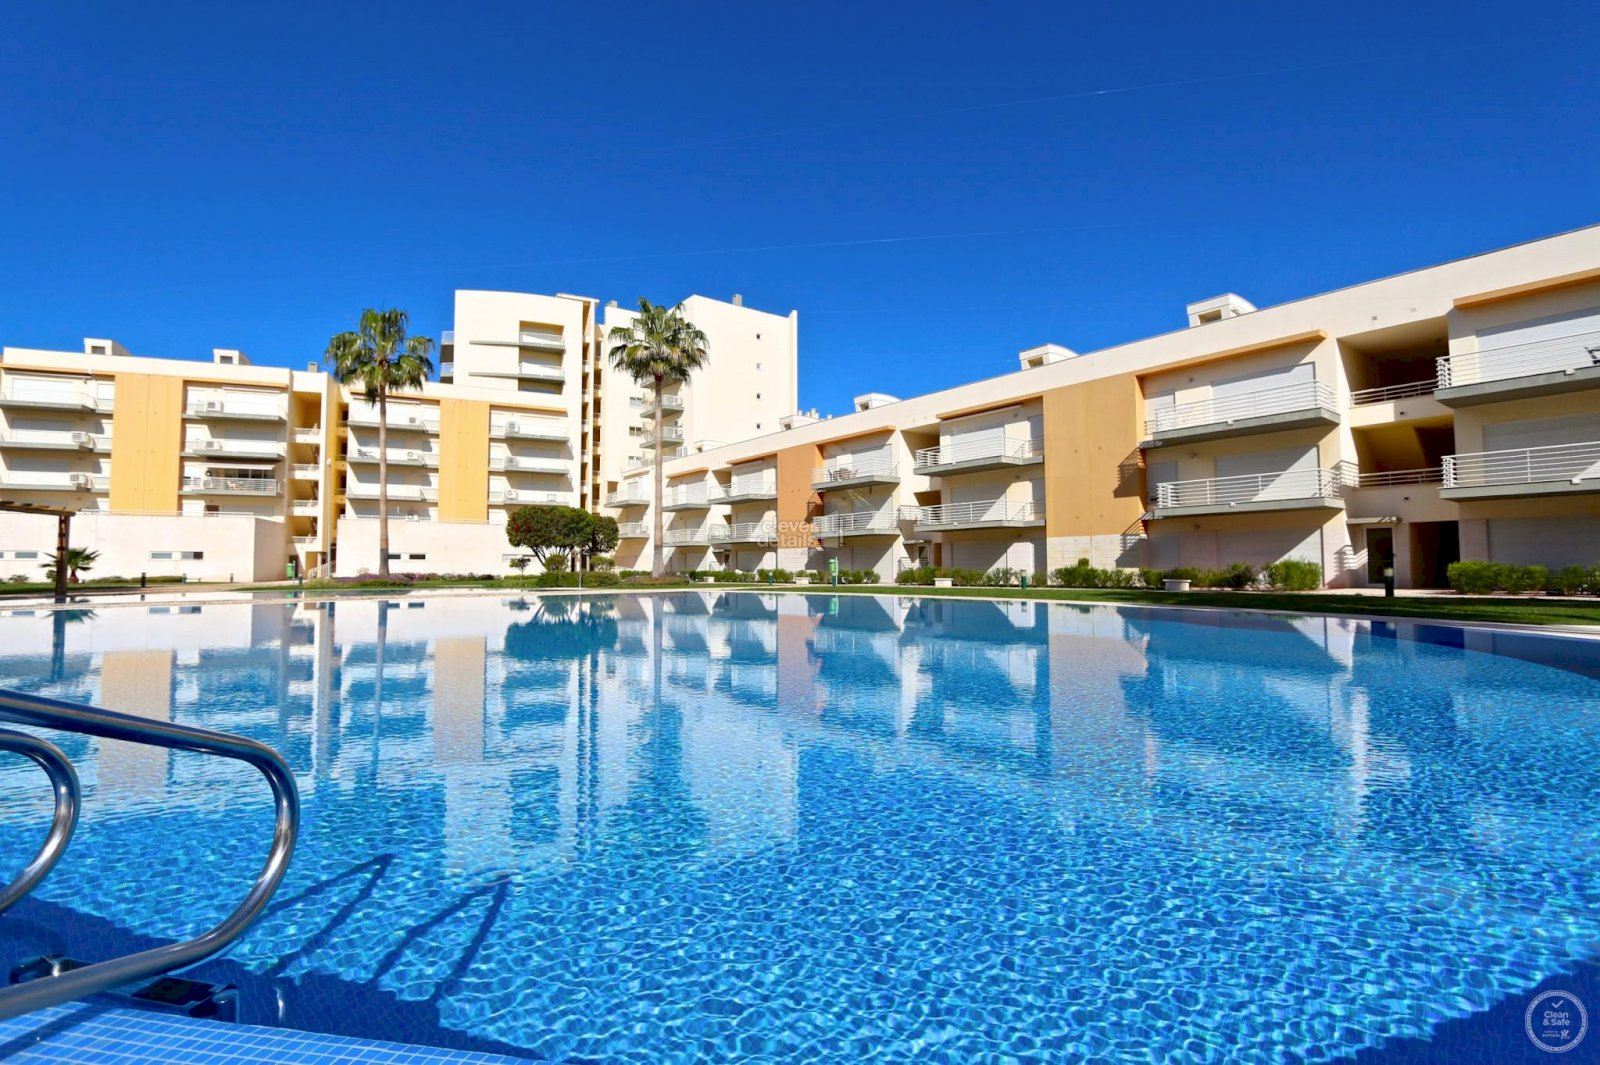 Best holiday accommodation in Vilamoura. Apartment rentals in Moura Praia close to the marina and the beach.